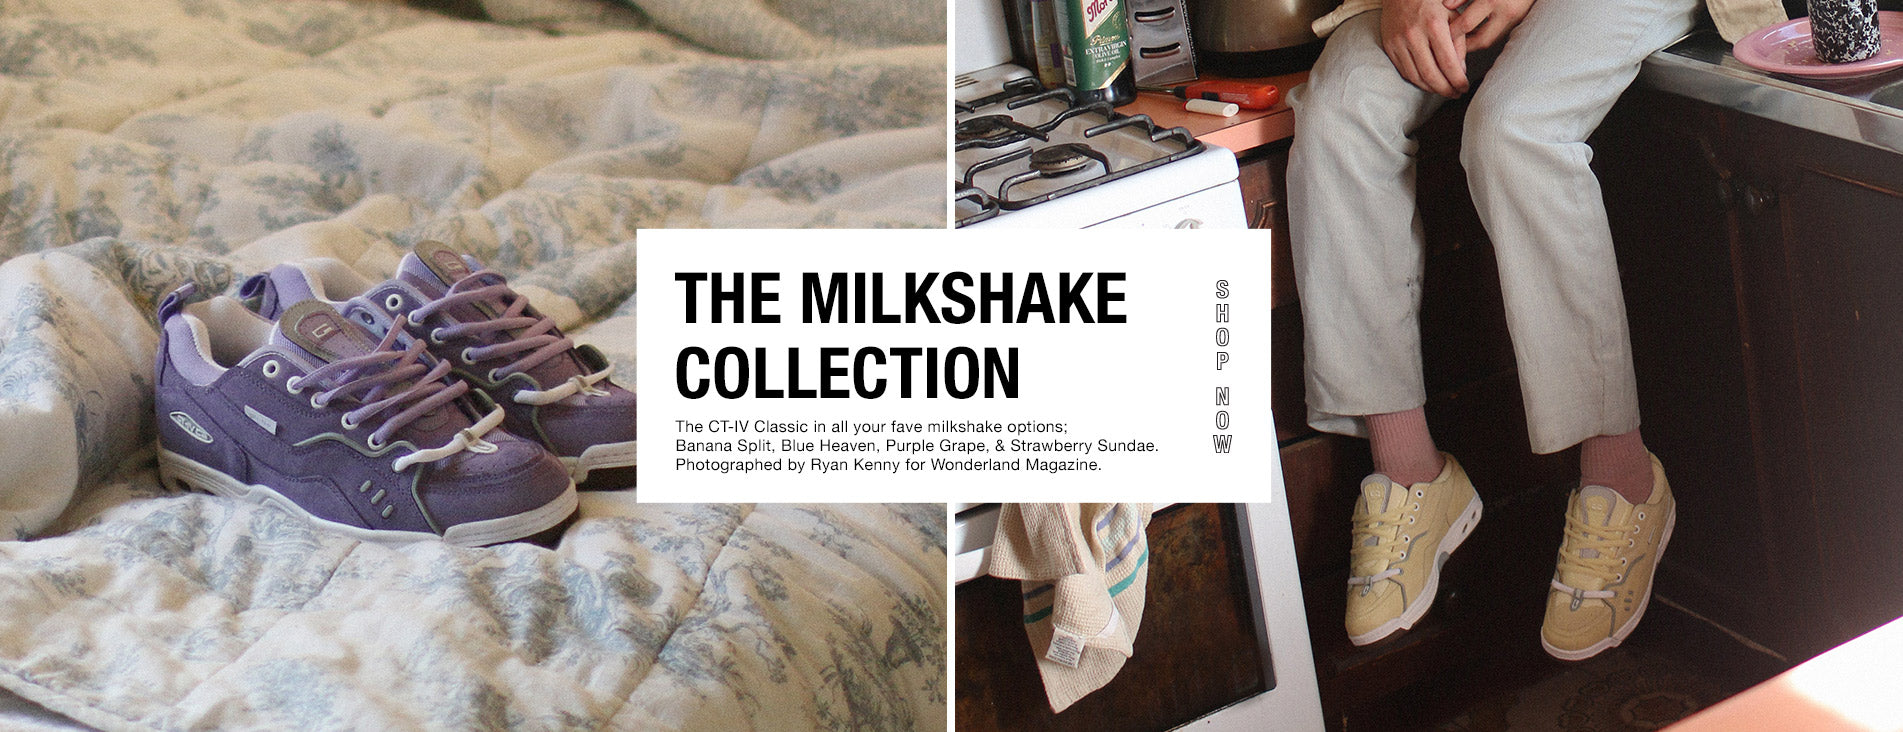 The Milkshake Collection